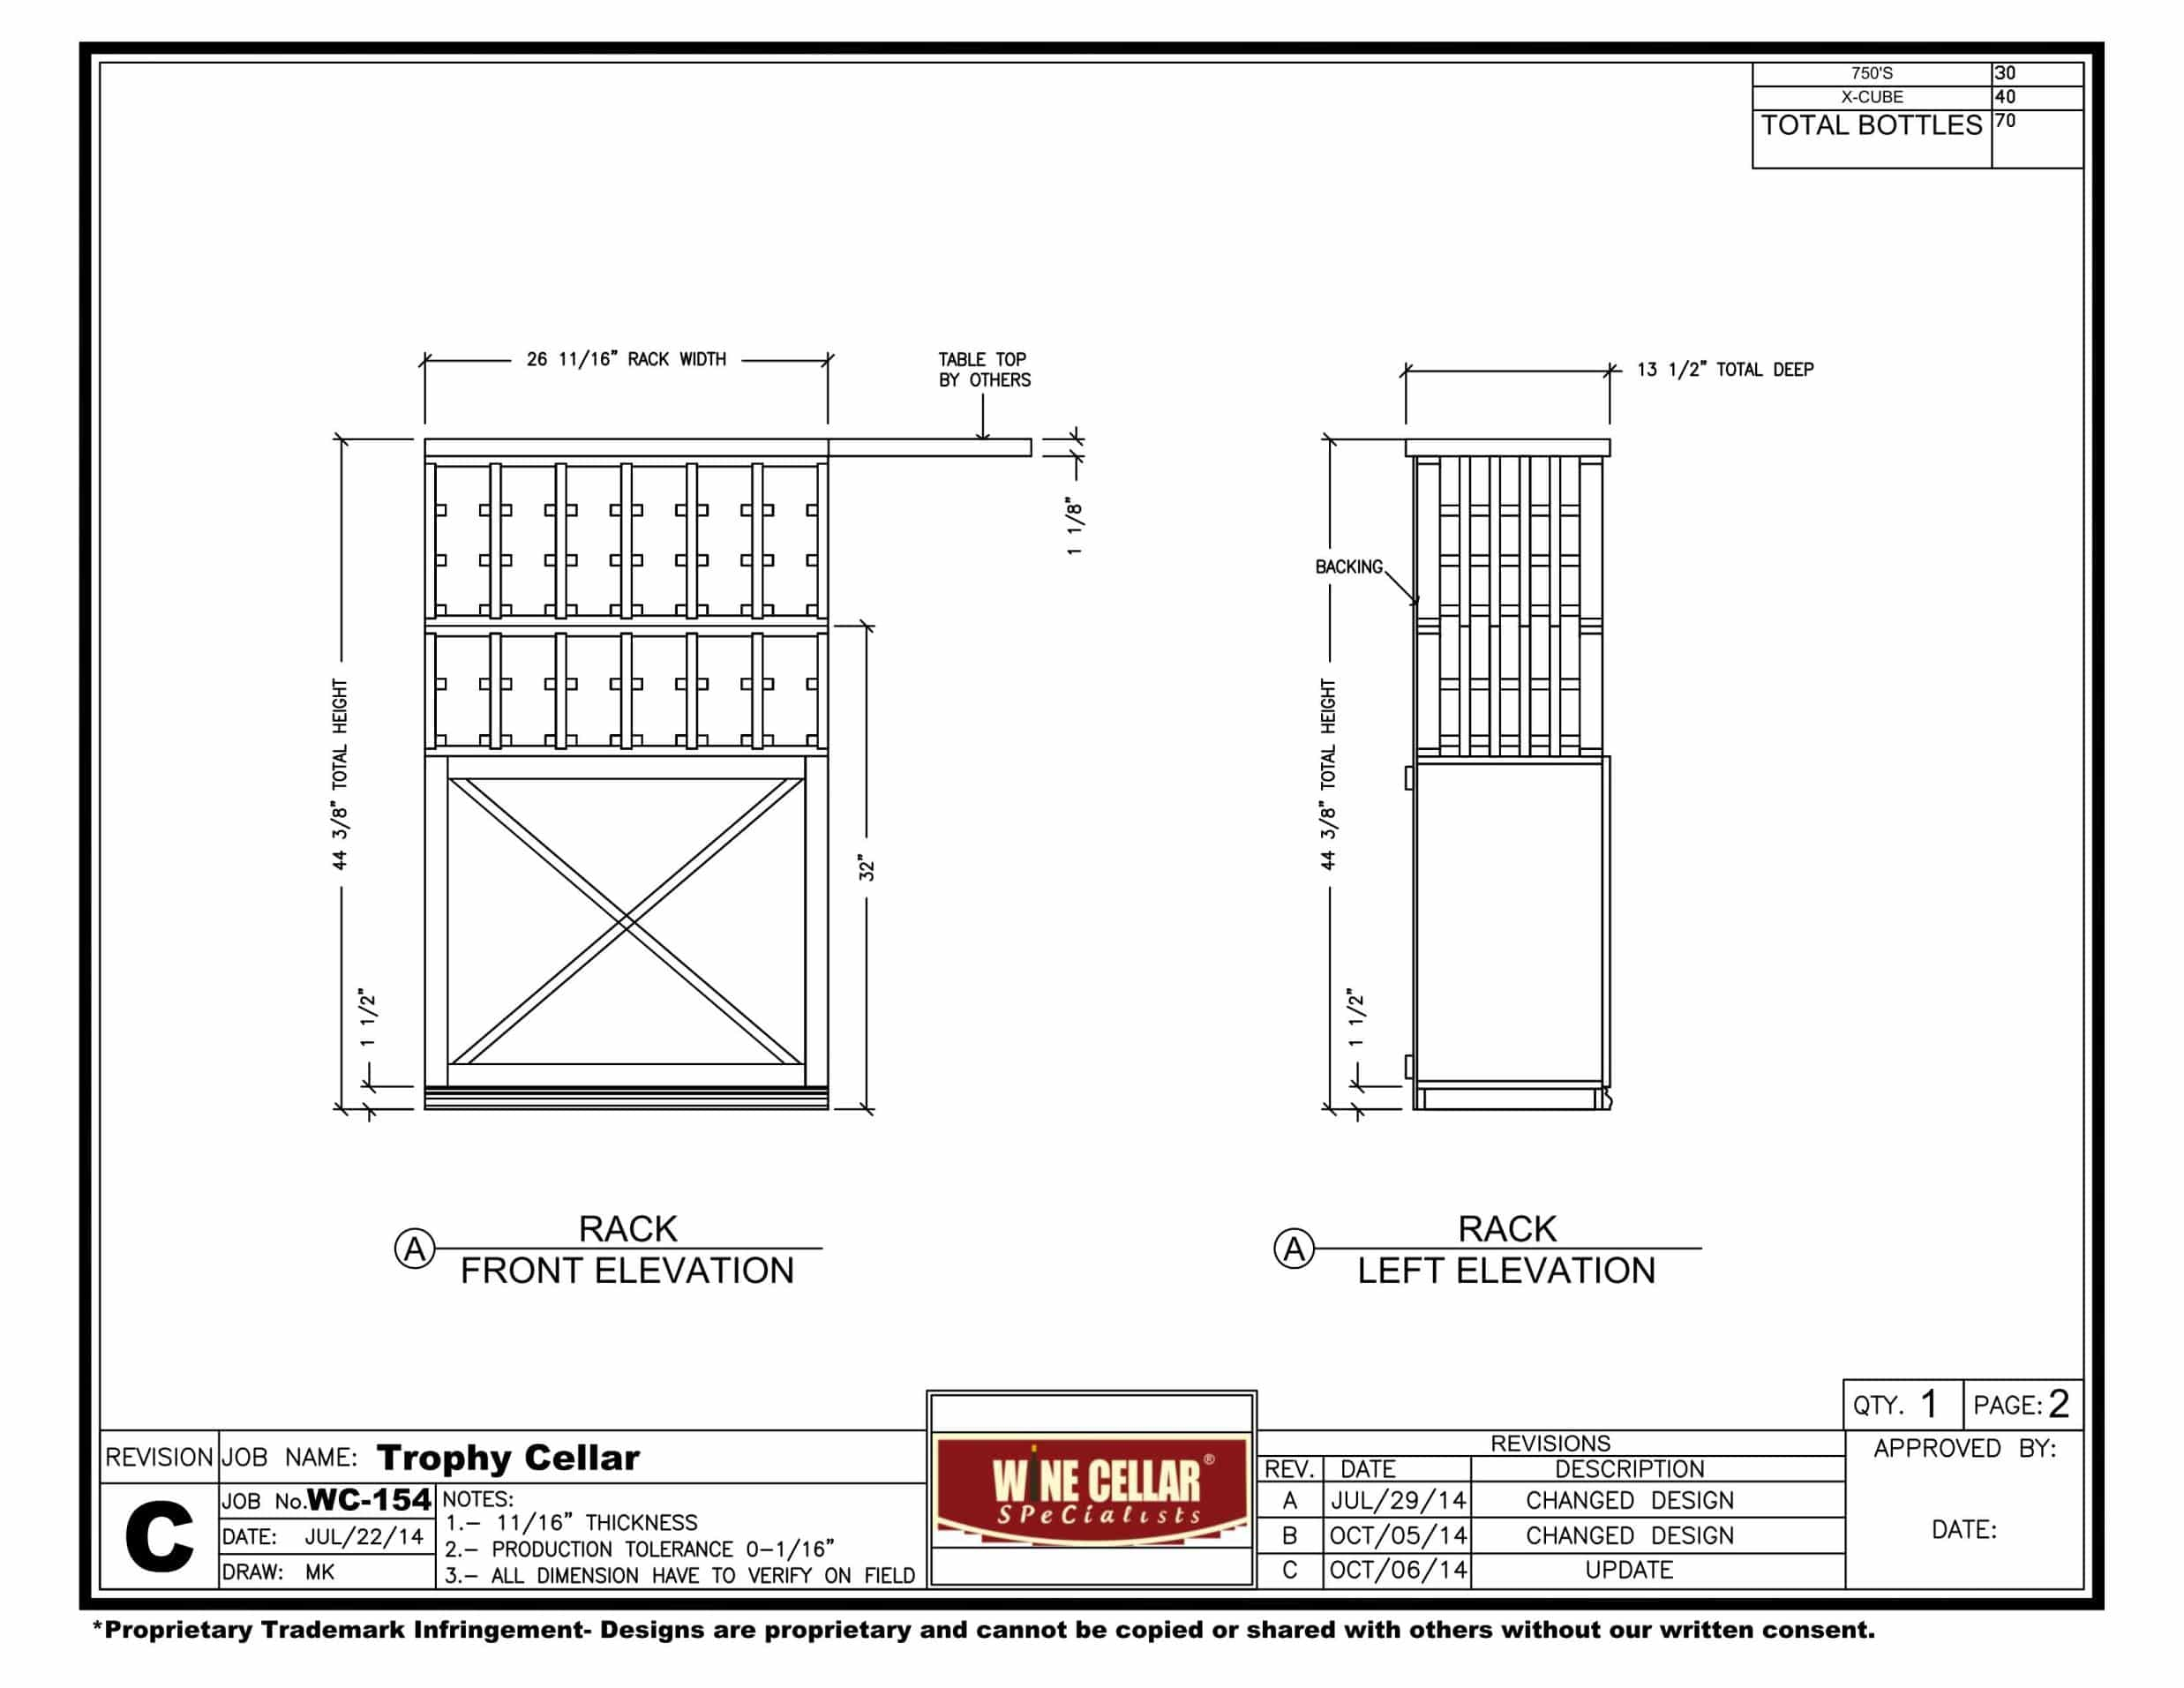 Texas Residential Custom Wine Cellar Rack Front Elevation